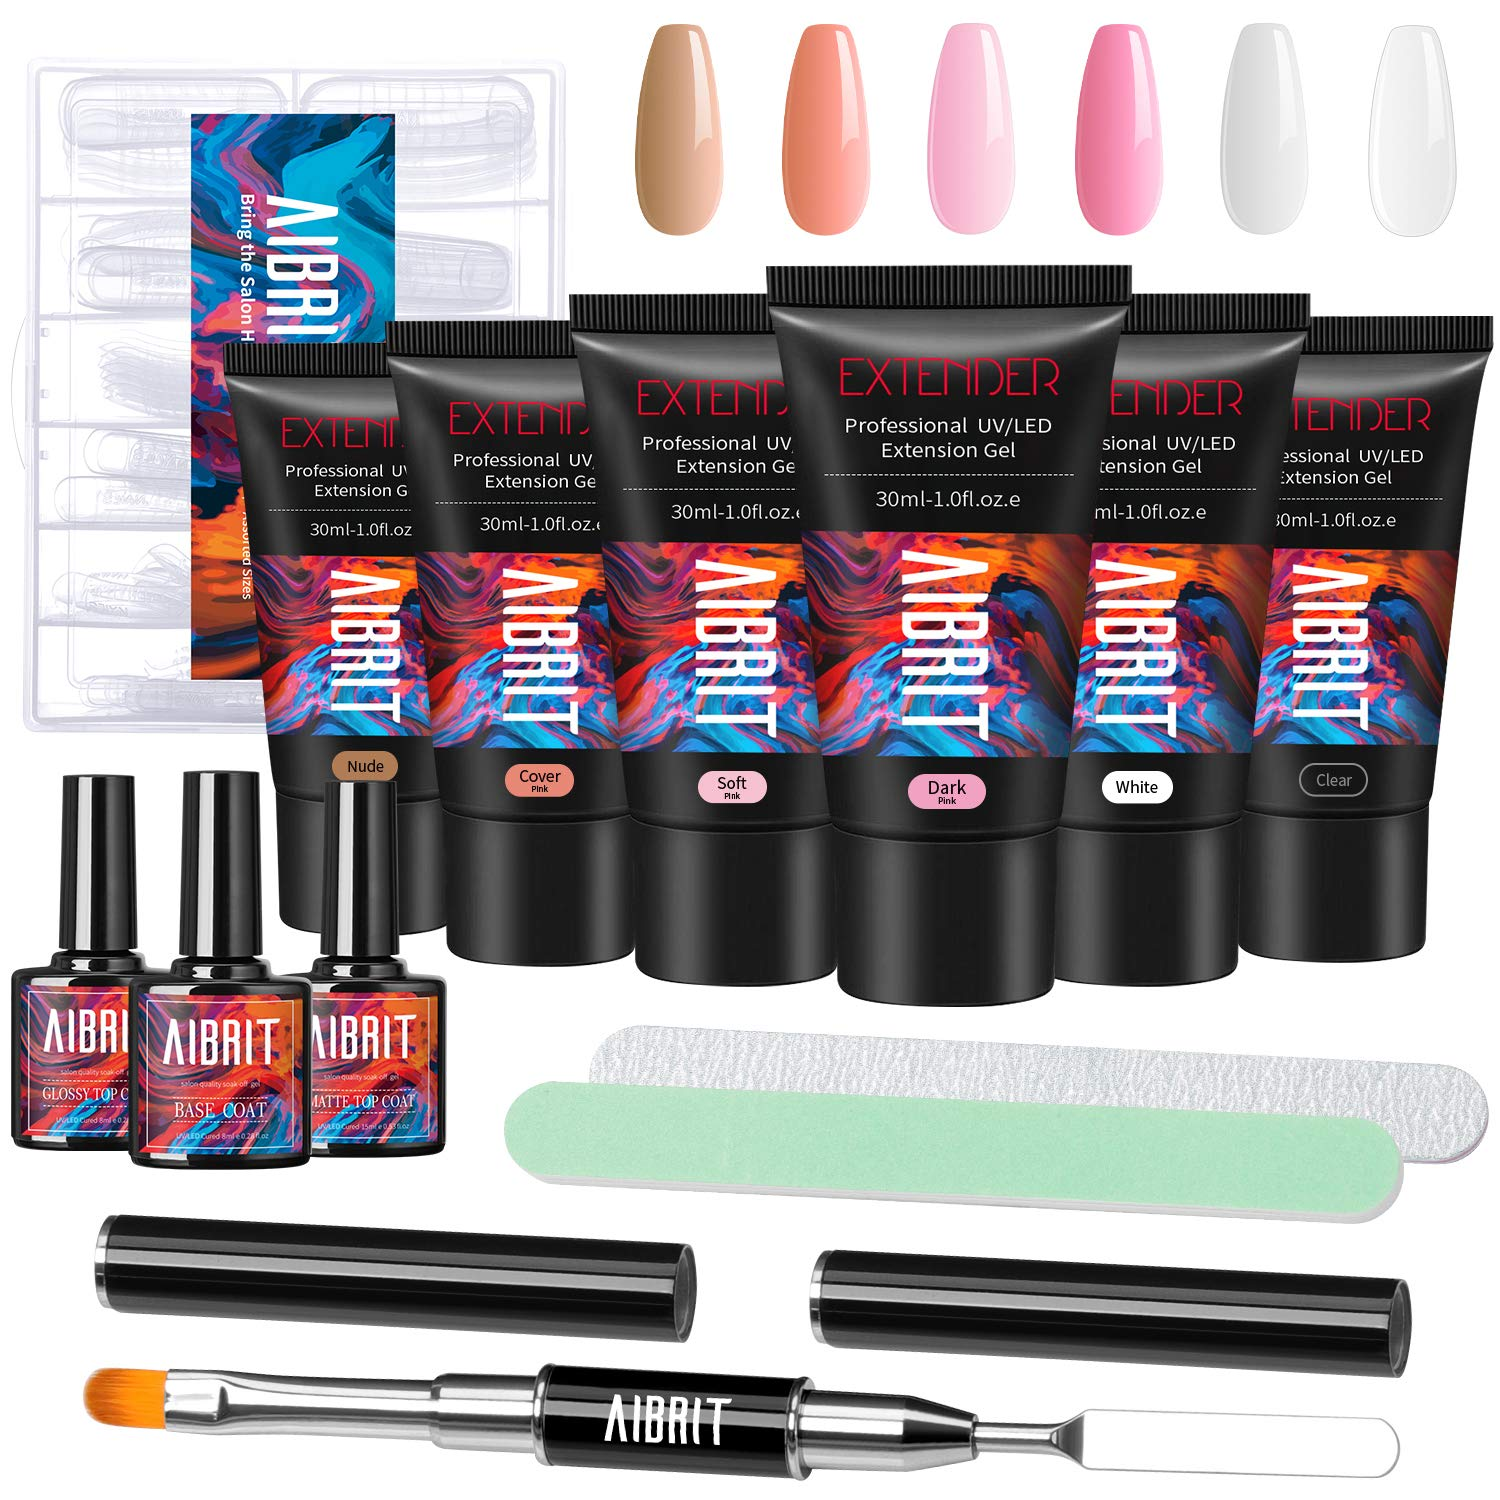 Poly Extension Nail Gel Kit, Aibrit 6 Colors 30ML Builder Gel with No Wipe Base and Glossy/Matte Top Coat, Nail Files, Brush, 120 Fake Nails for Nail Extension Design